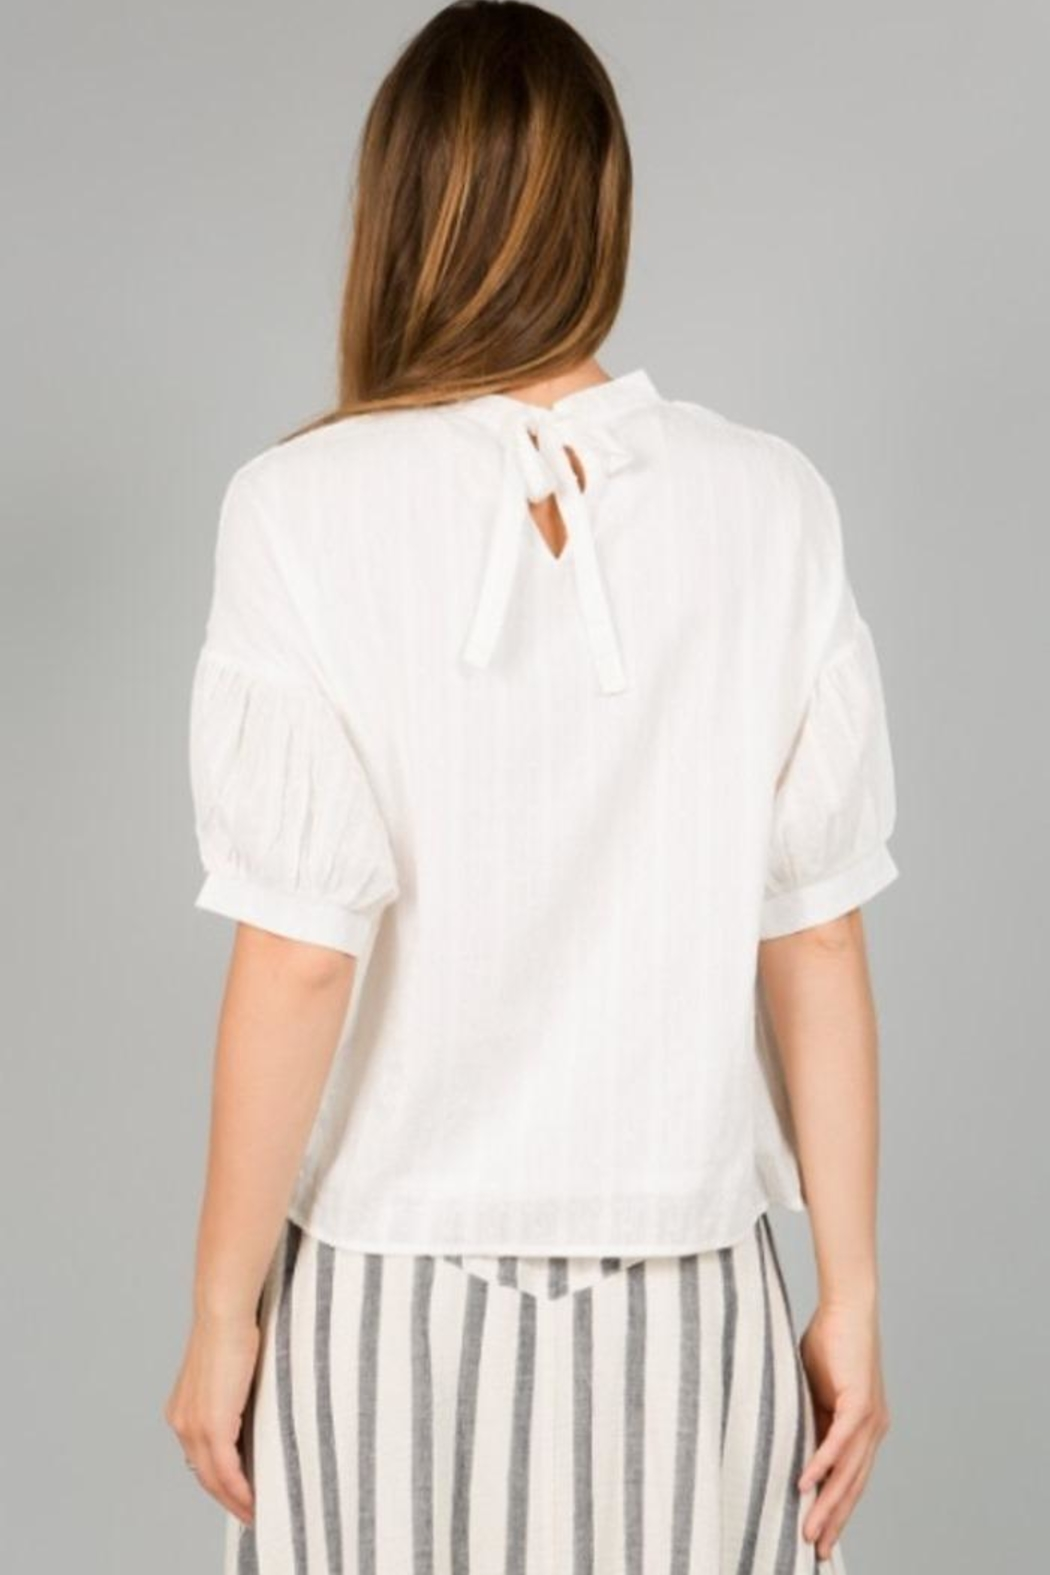 Hidden Closet Tie Back Top - Side Cropped Image